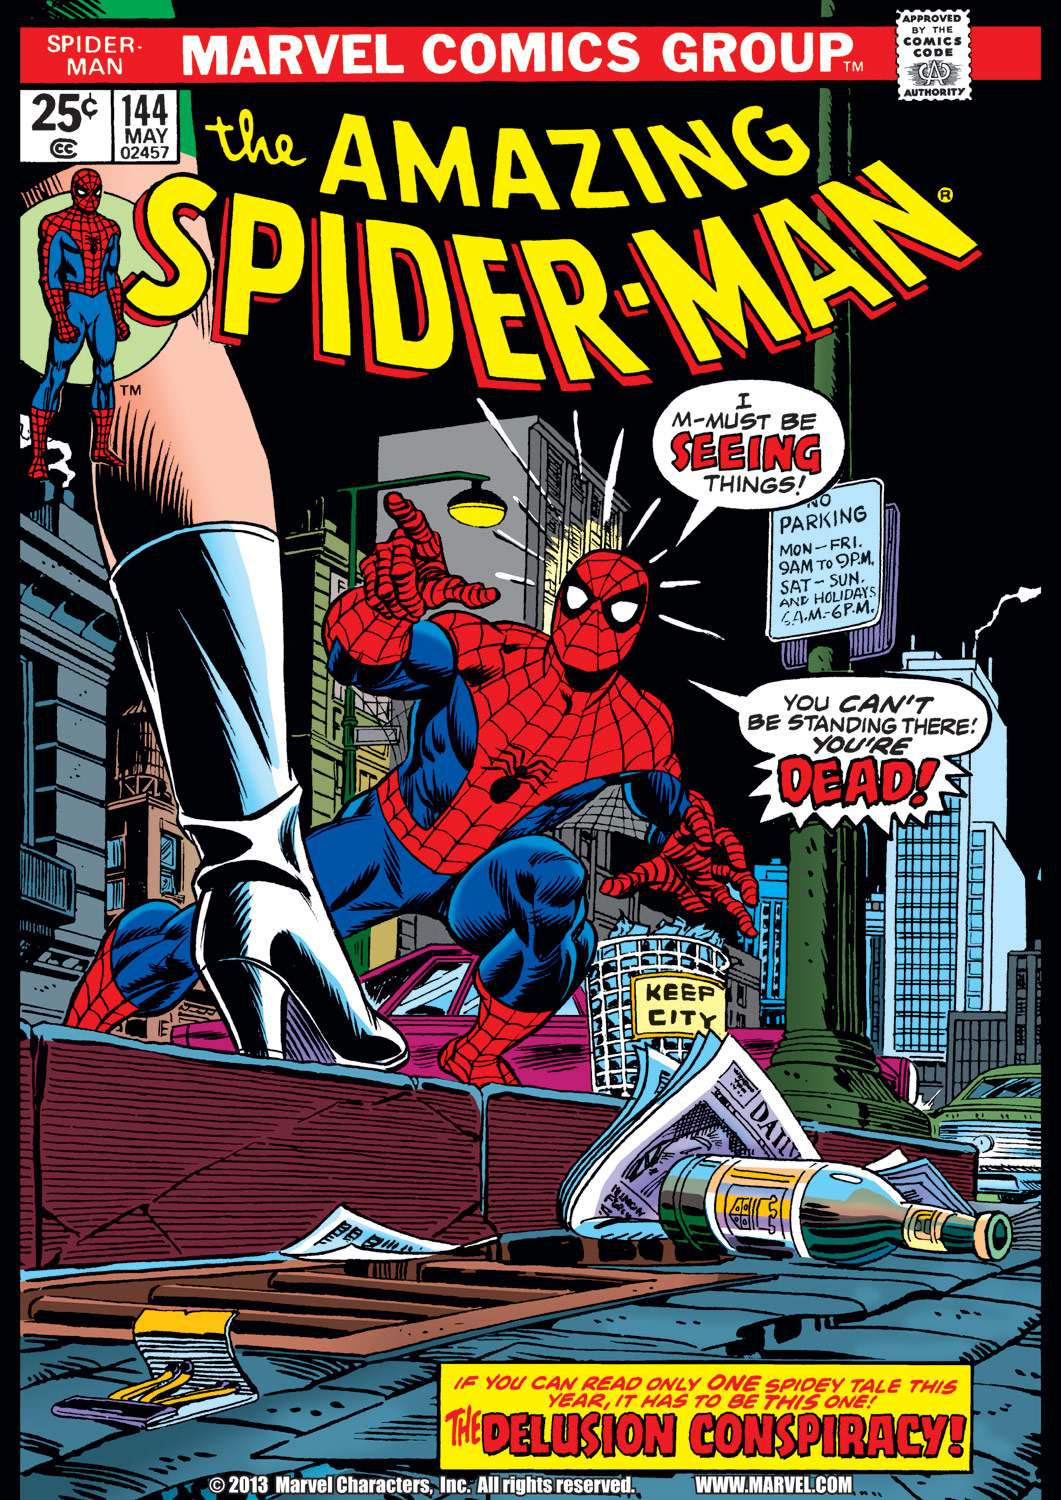 The Amazing Spider-Man (1963) #144